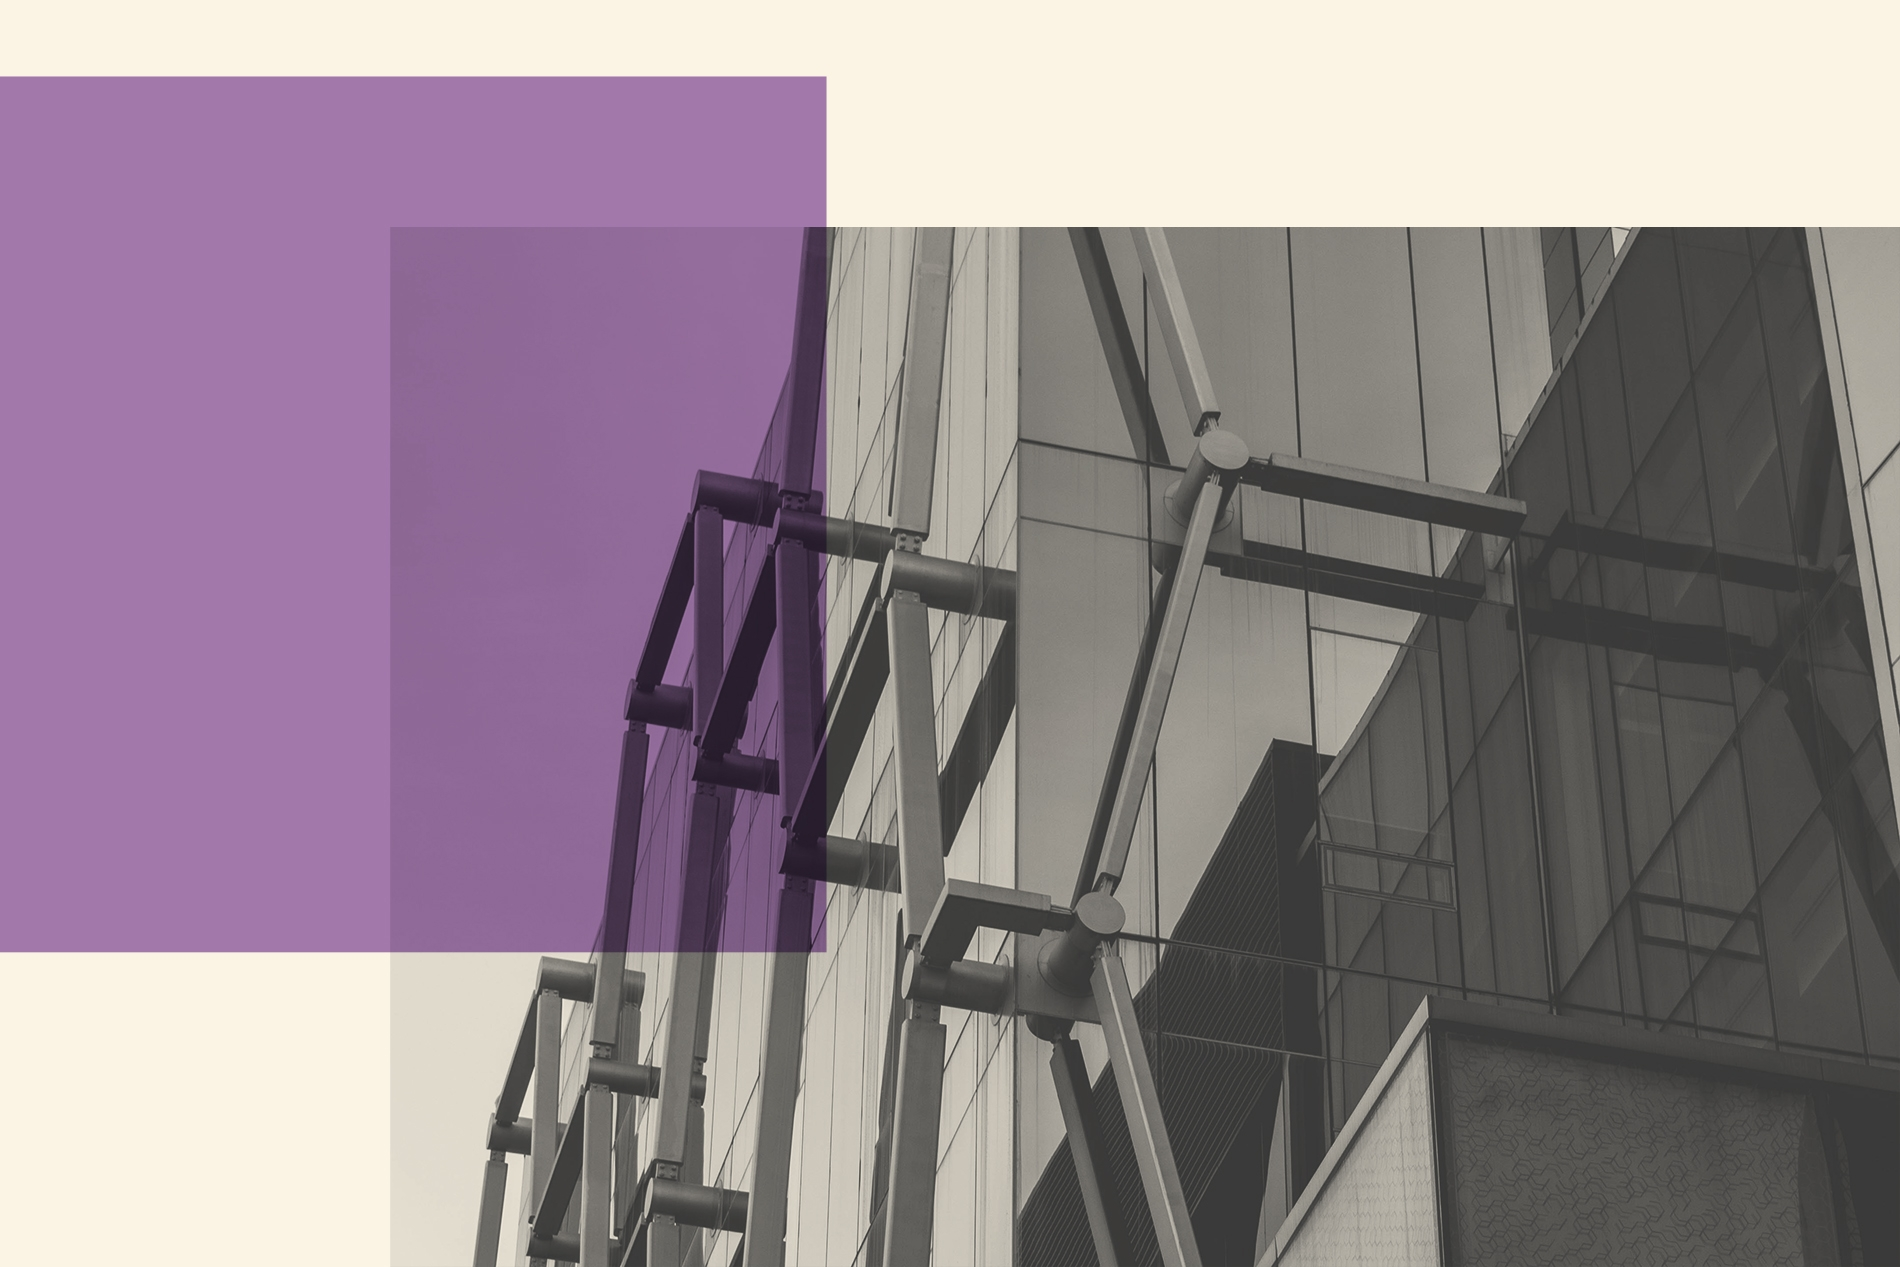 A building viewed from below with a purple overlay